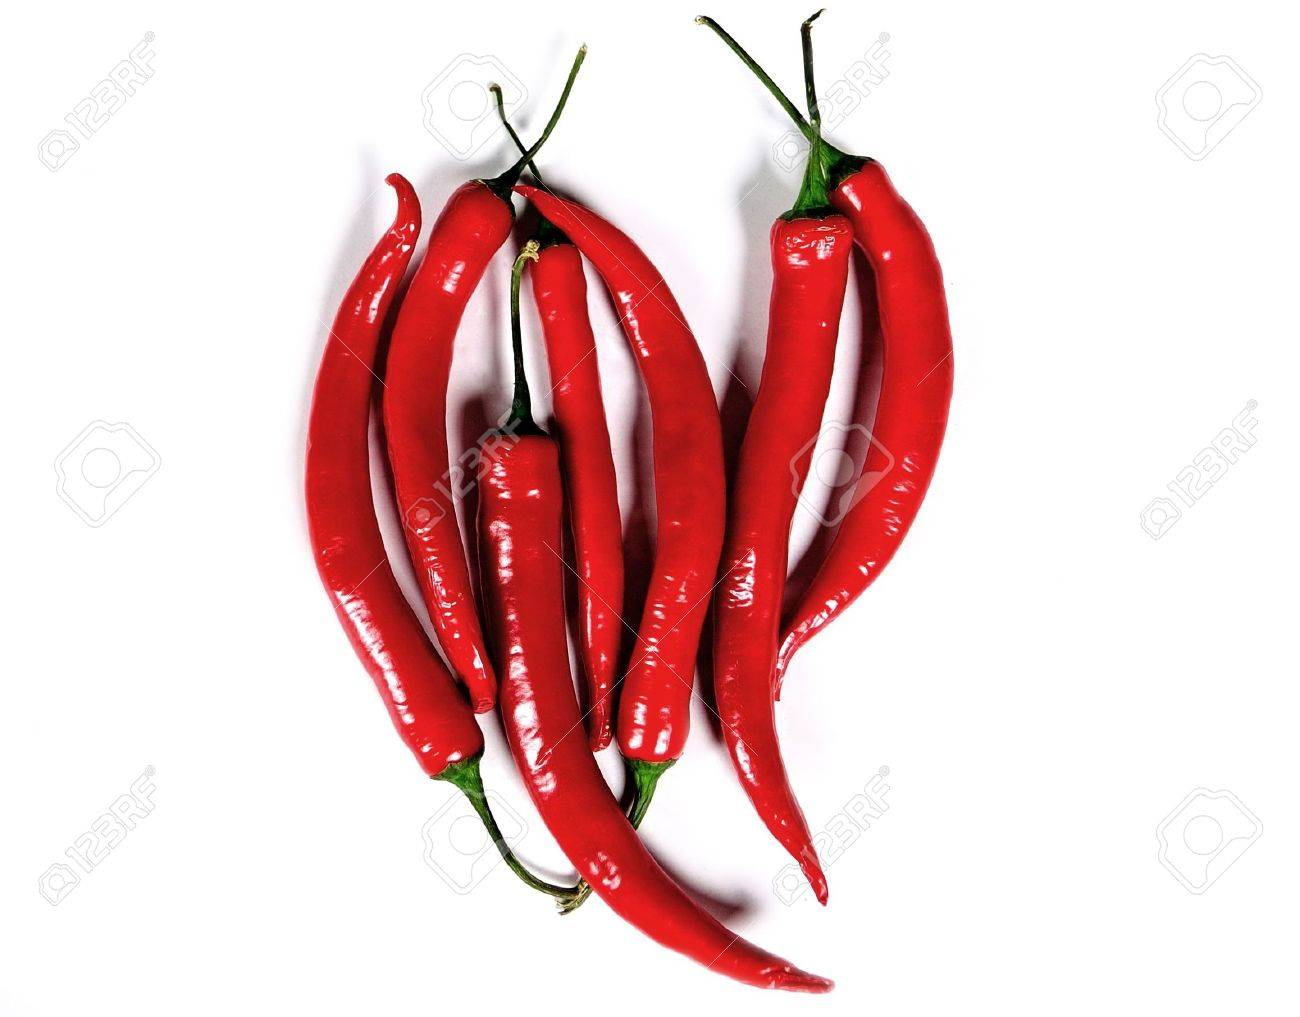 Chili peppers' heart, Mexican cuisine Stock Photo - 6873108